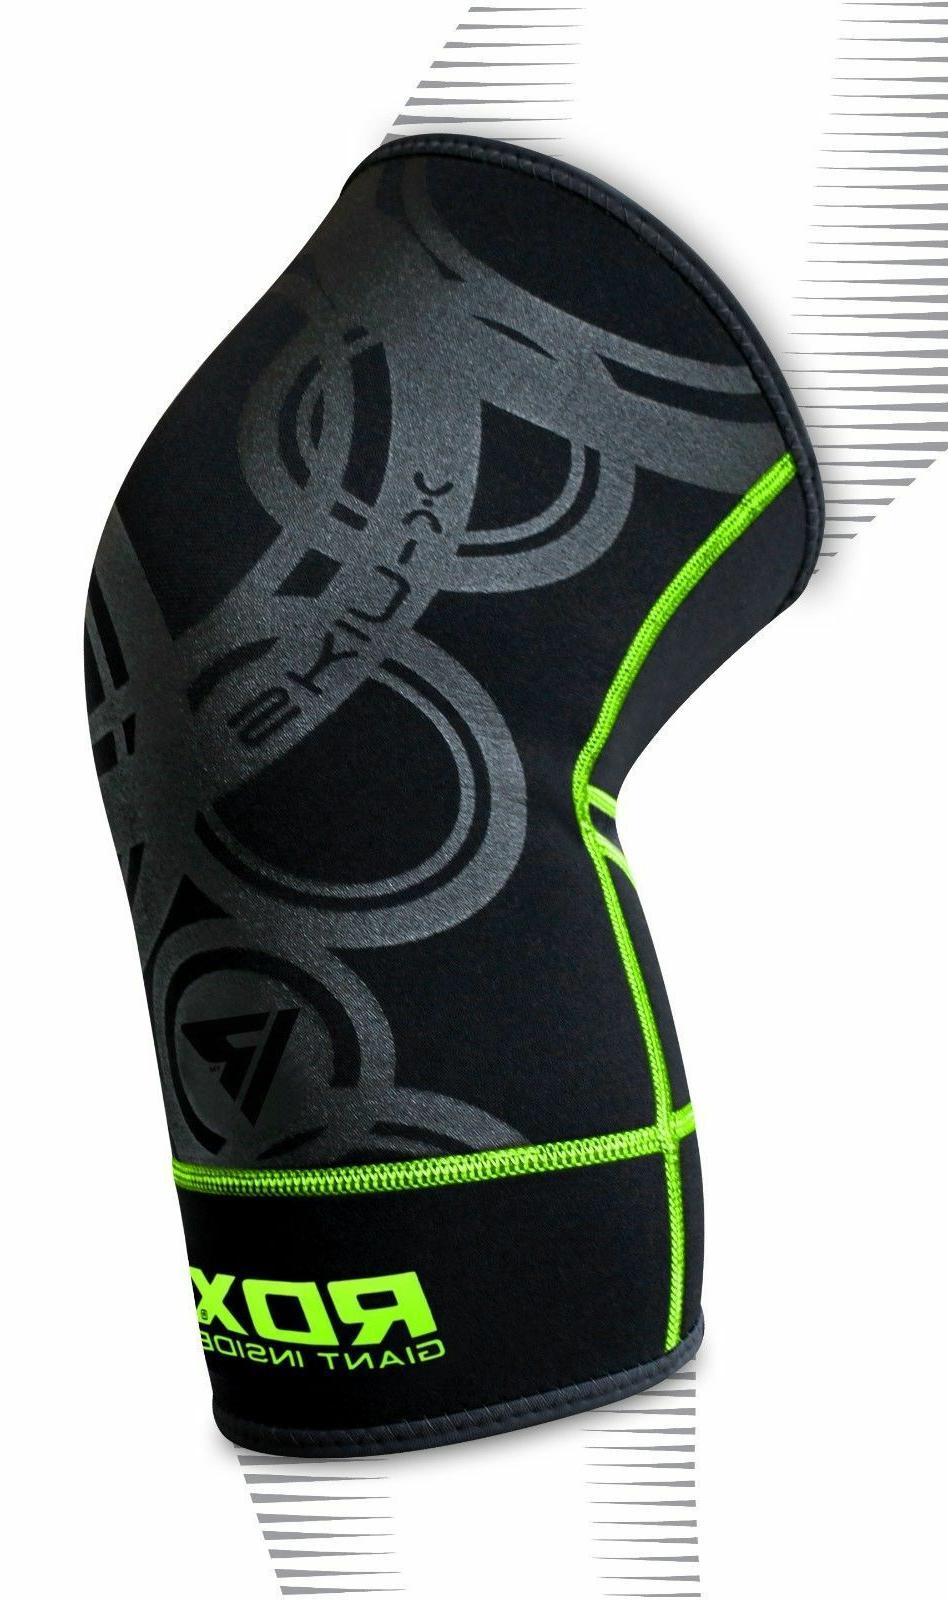 RDX Knee Protector Leg Wrap Sleeve Sports